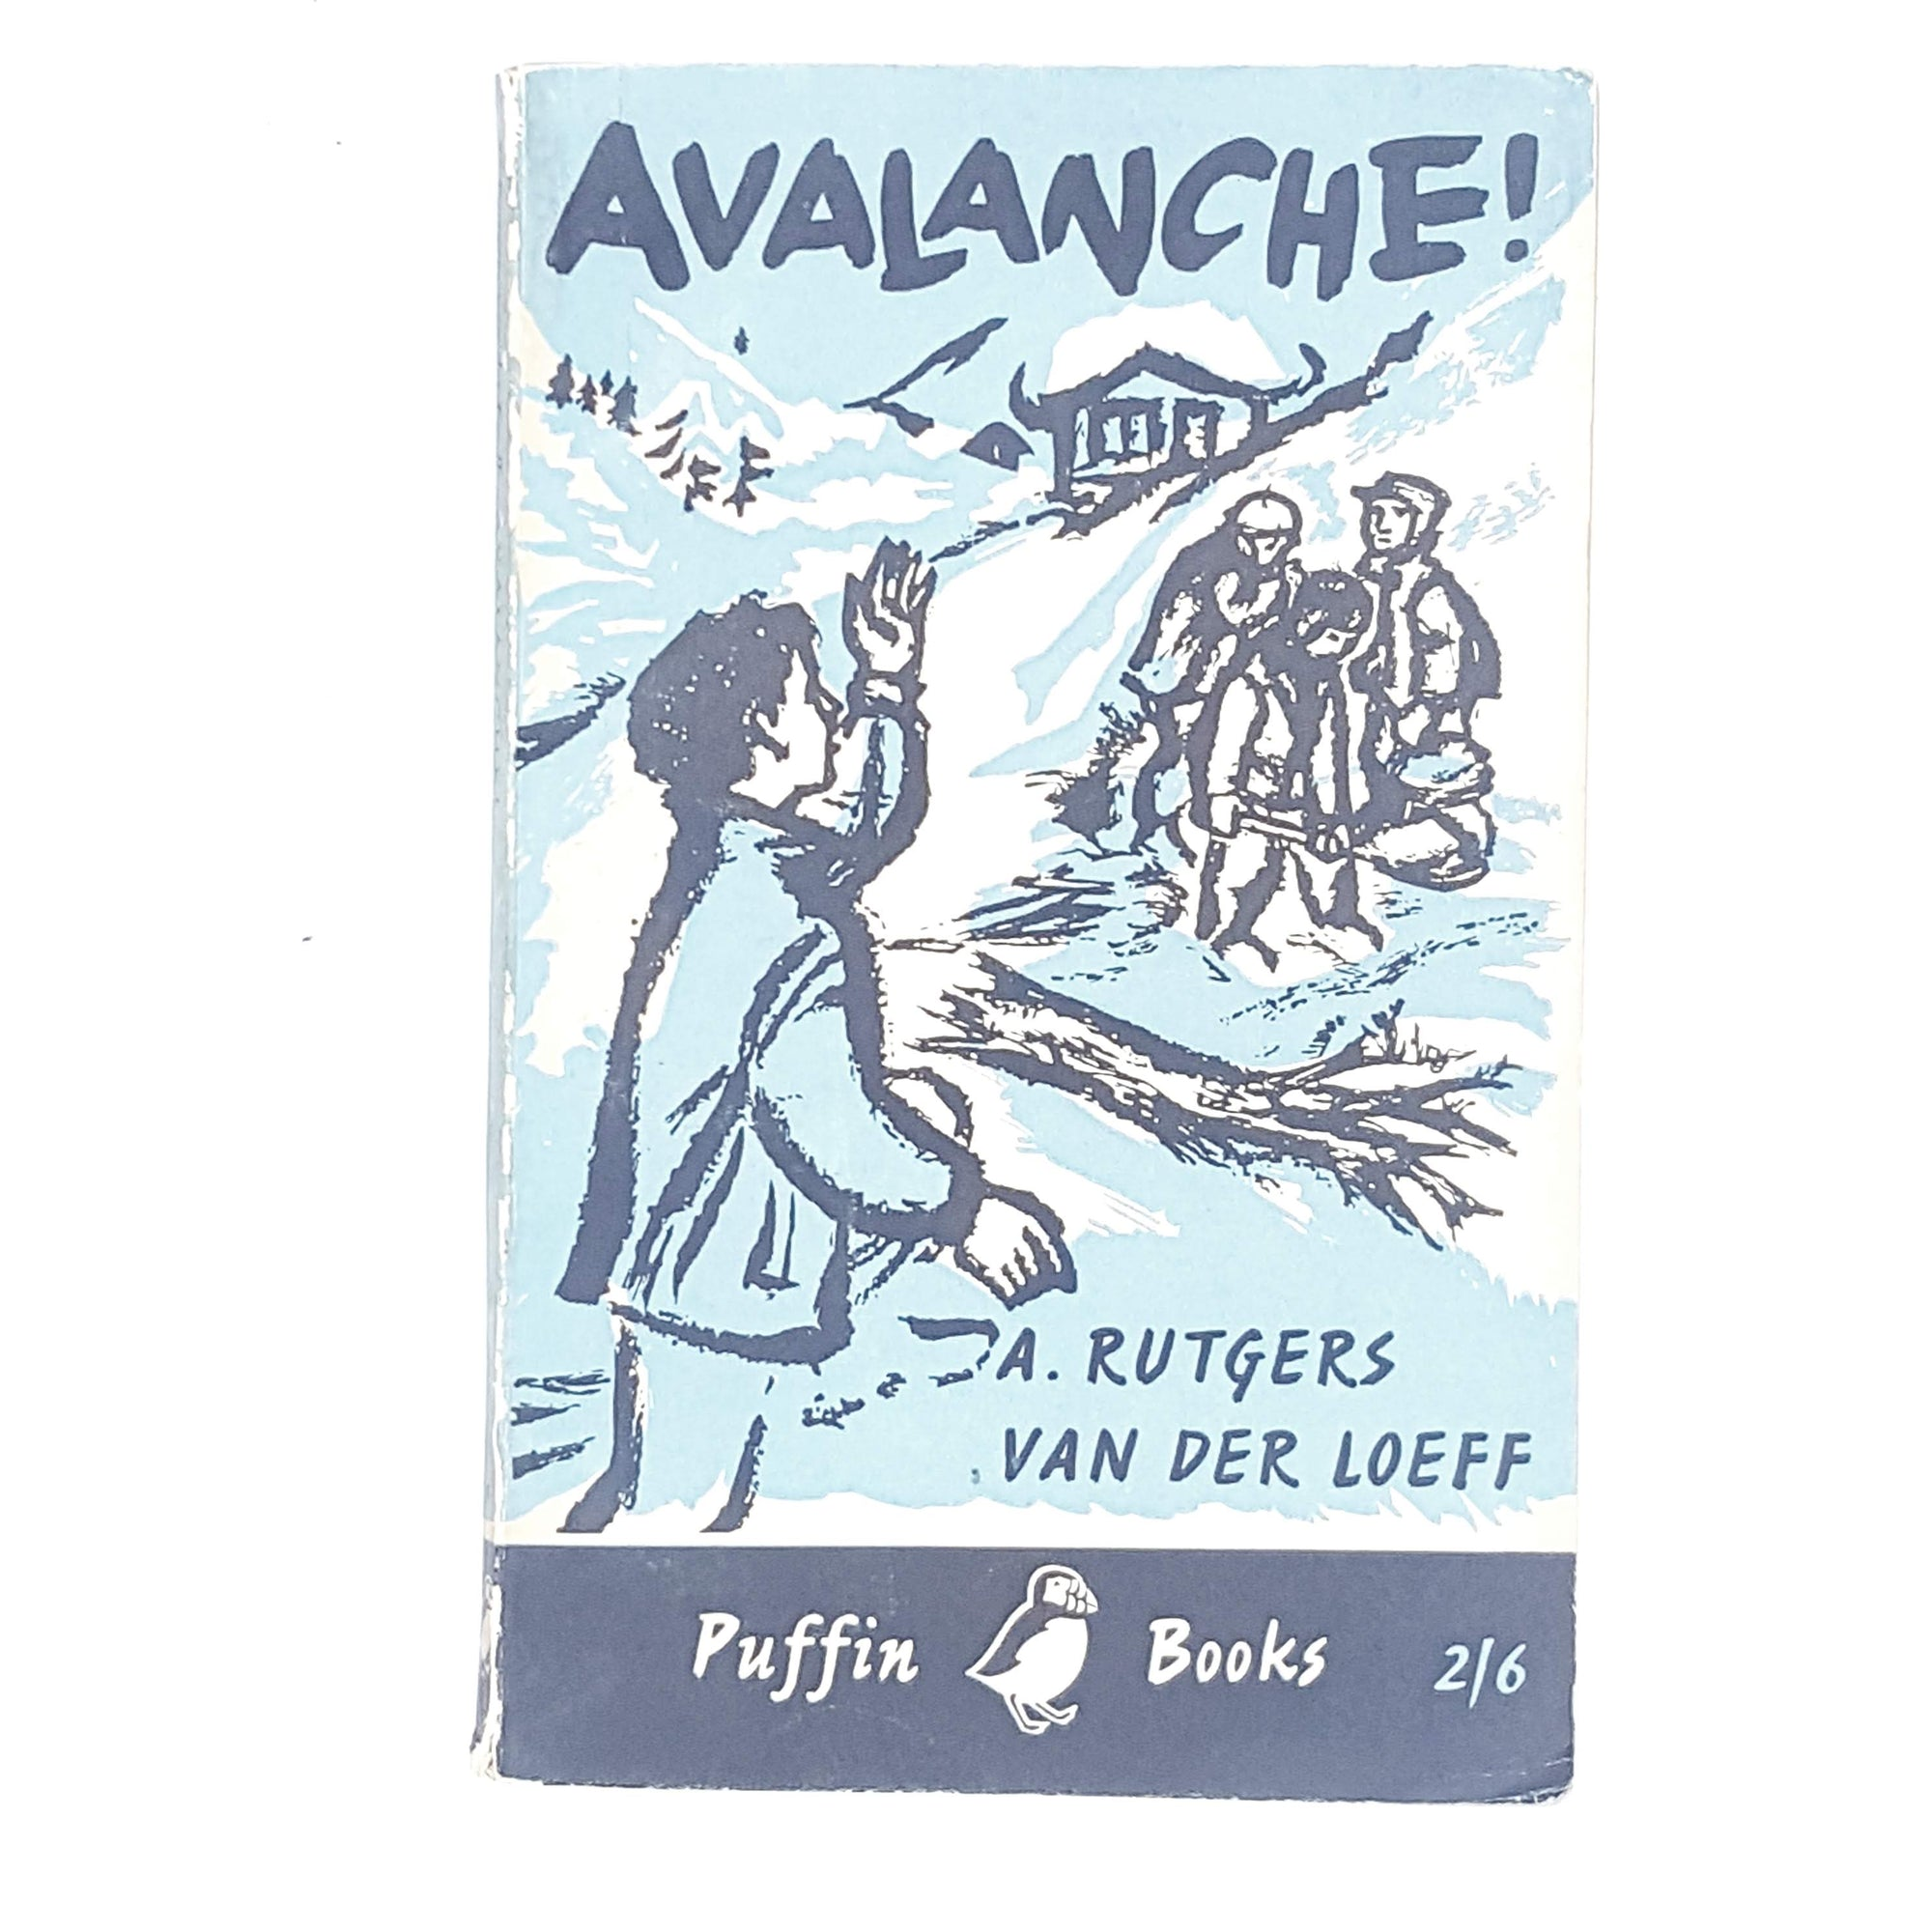 Avalanche! by A. Rutgers van der Loeff 1959